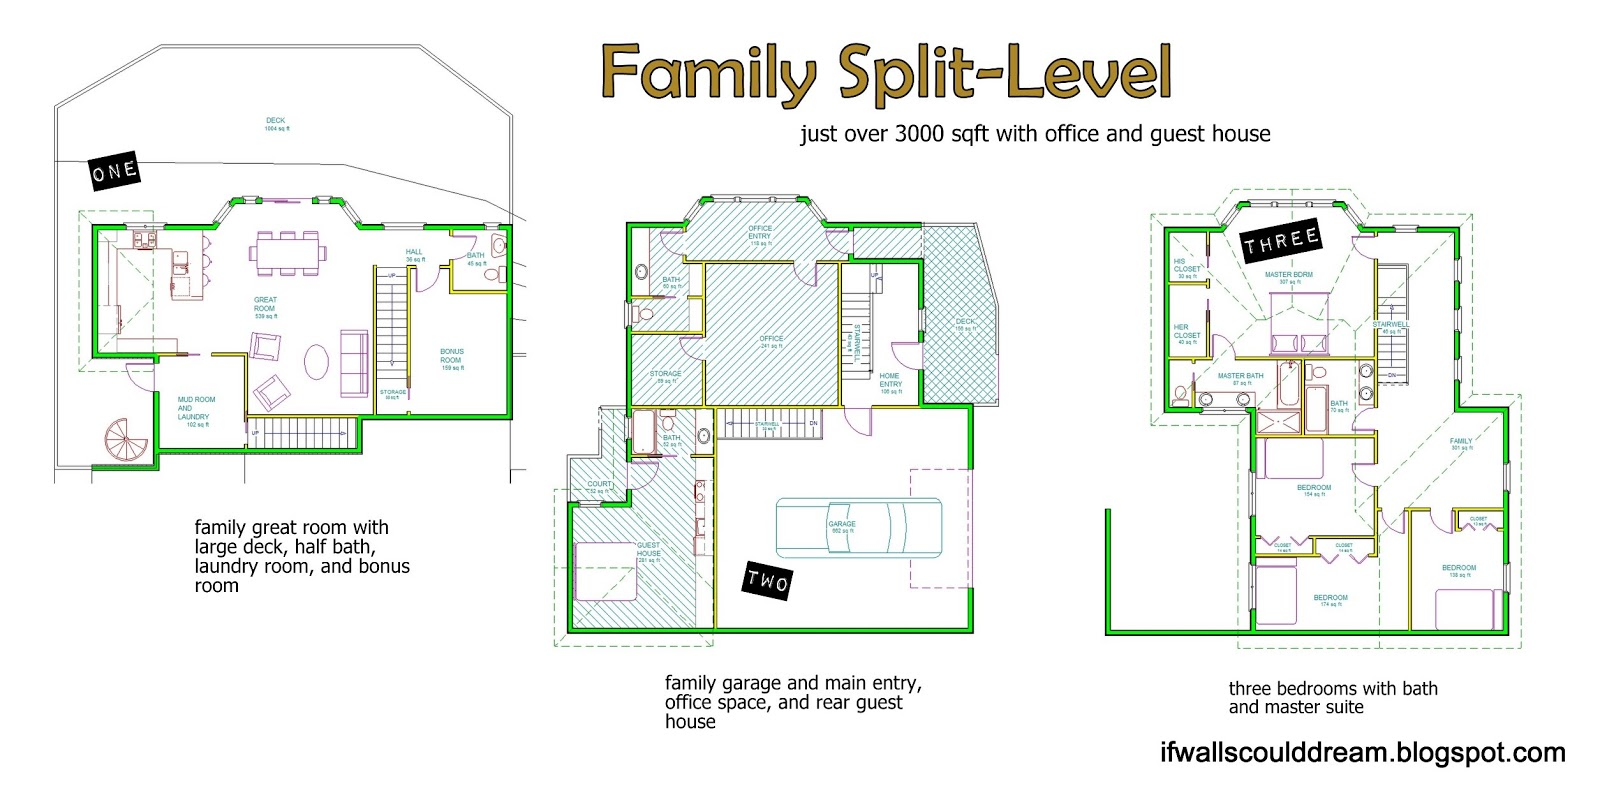 If walls could dream family split level for Split level home designs